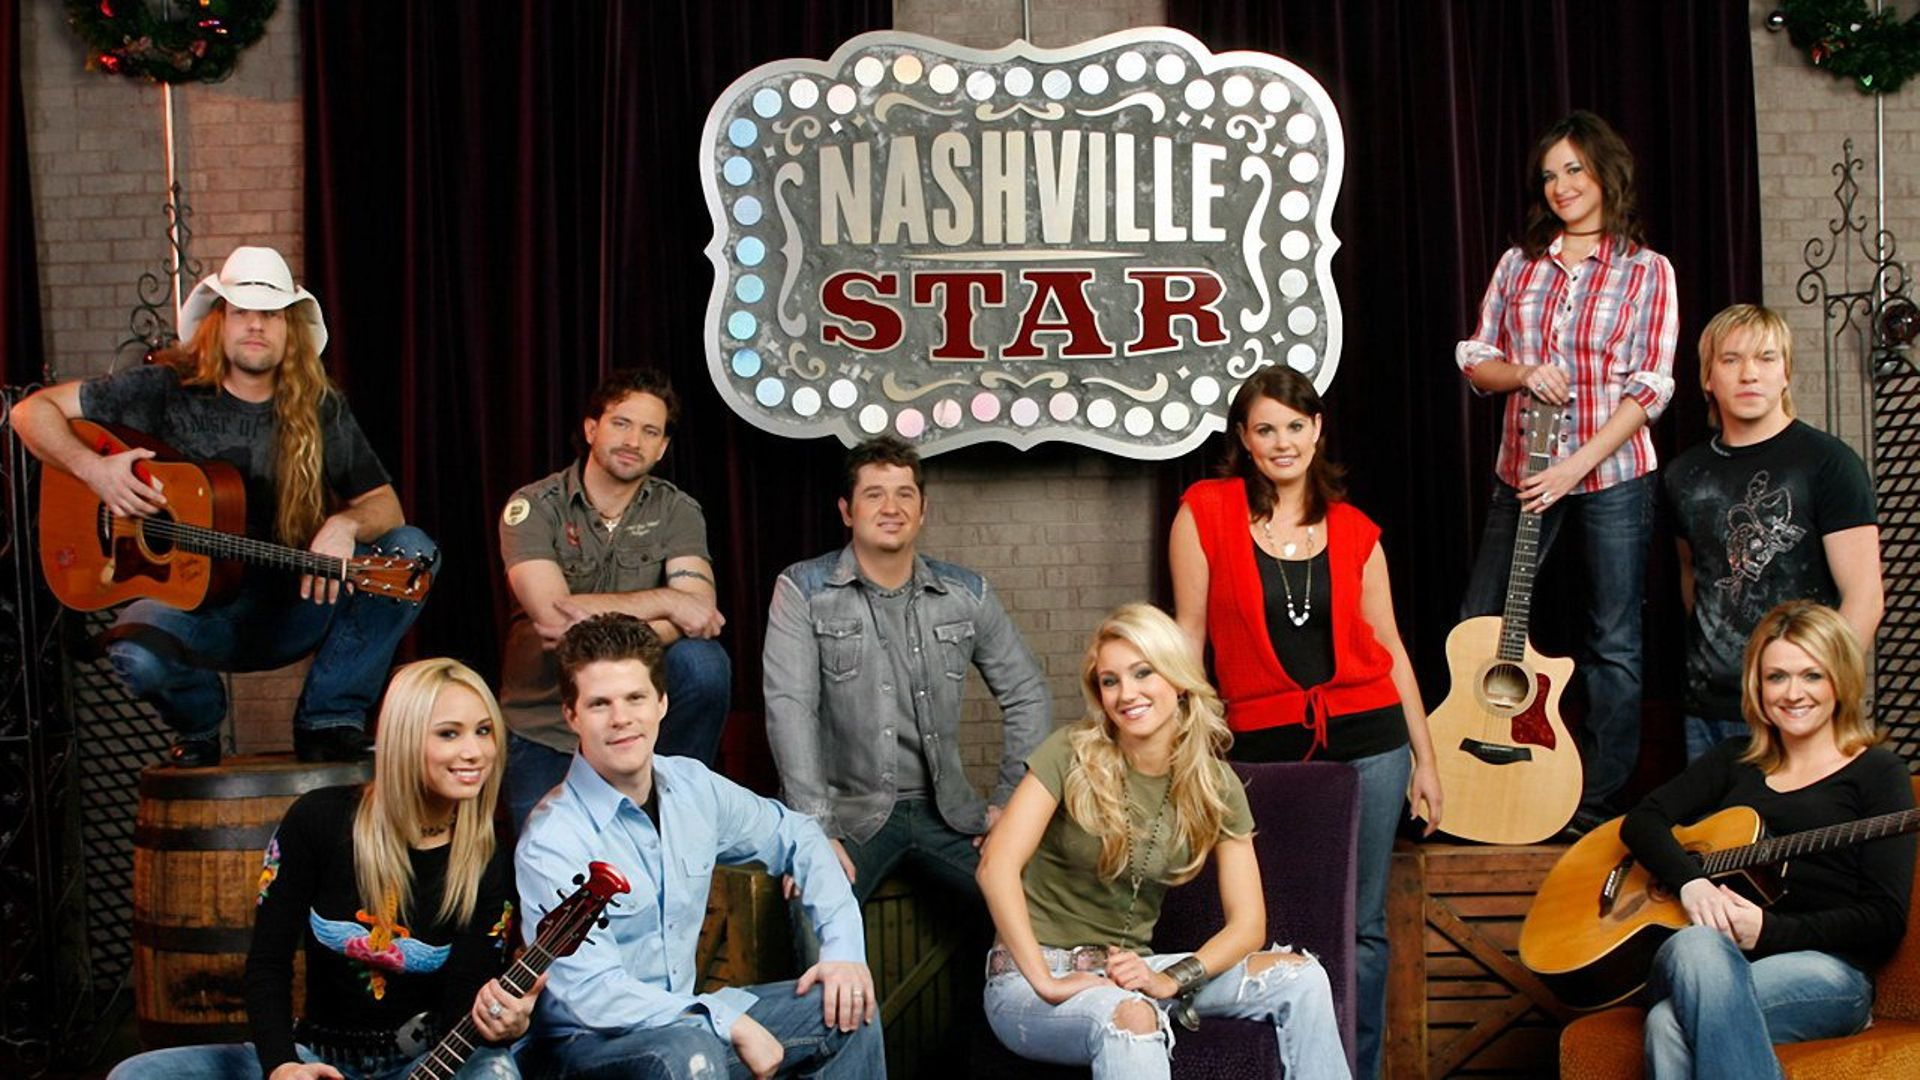 Nashville Star - Where to Watch Every Episode Streaming